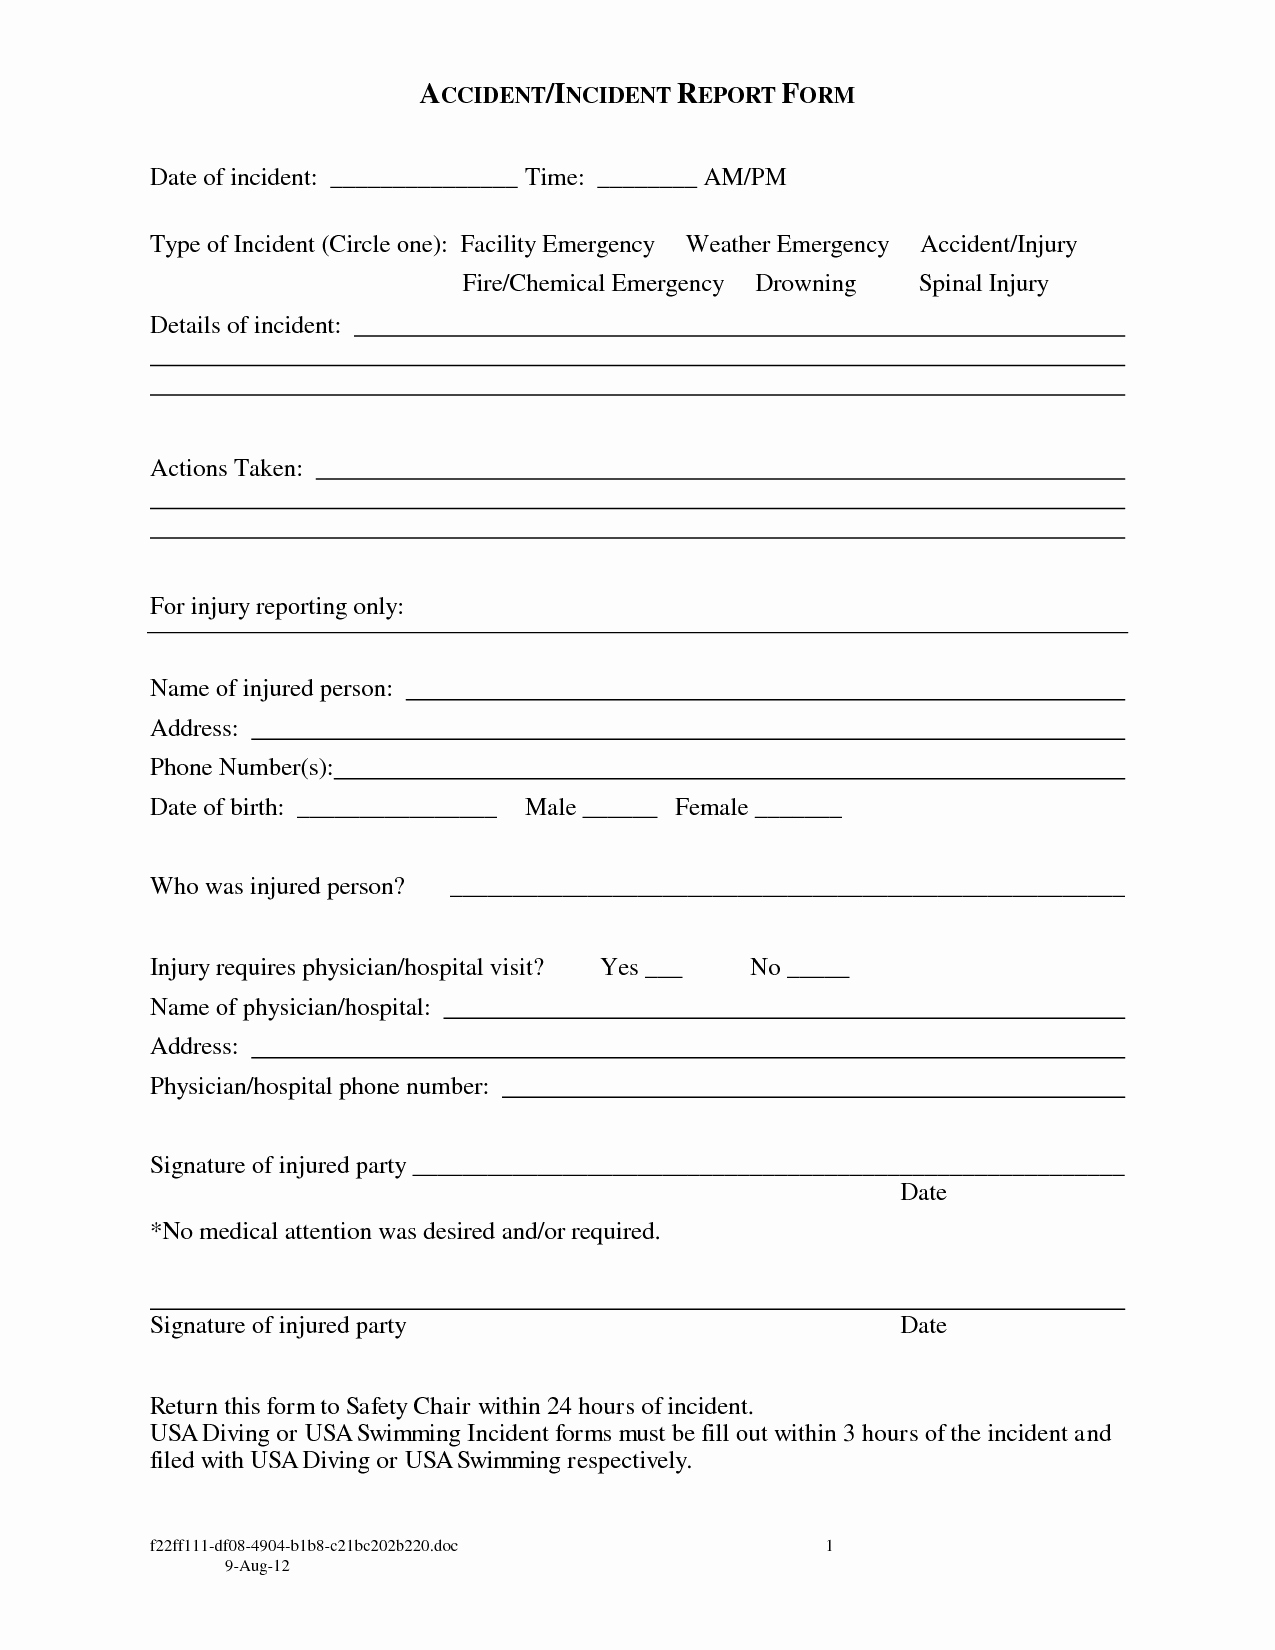 Best S Of Accident Incident Report form Accident